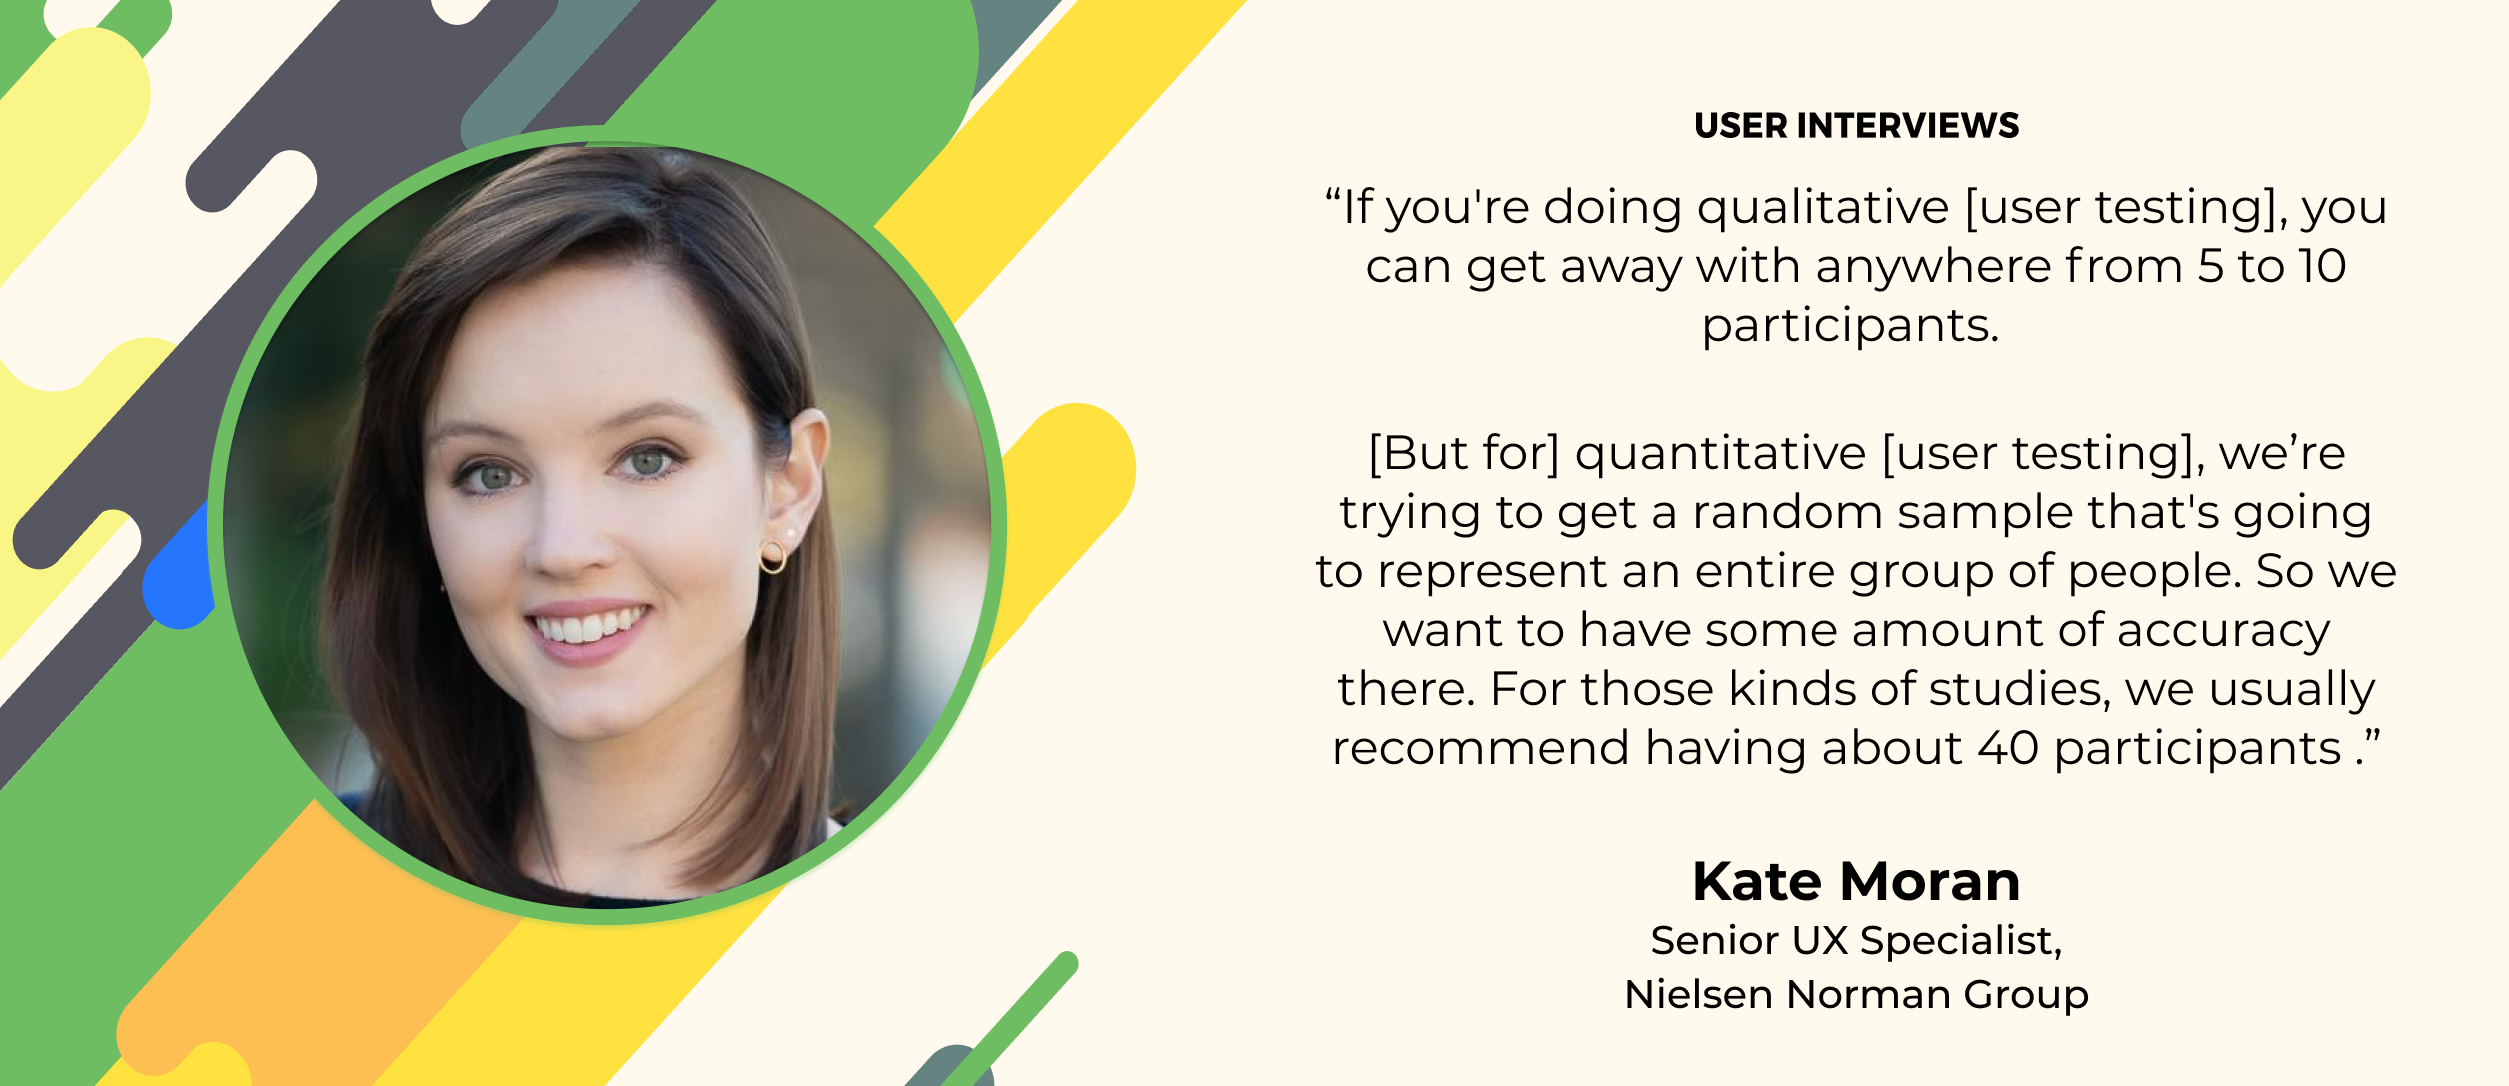 user research quote rom kate moran of NNG: she recommends 5-10 participants for qualitative research, 40 for quantitative studies